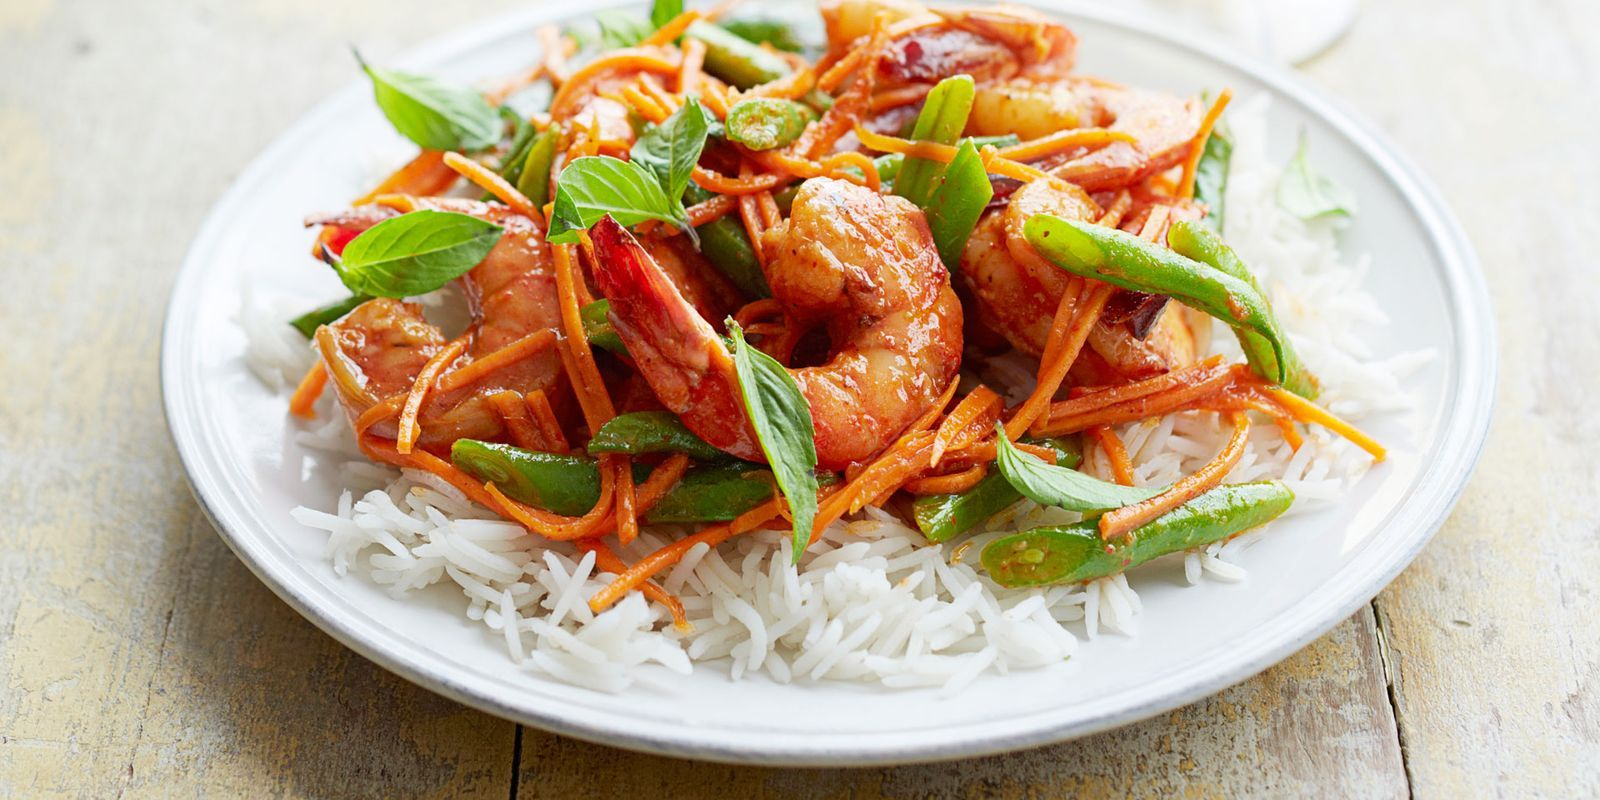 This quick and simple curry will have you enjoying a sweet-and-spicy Thai-inspired dish in mere minutes.